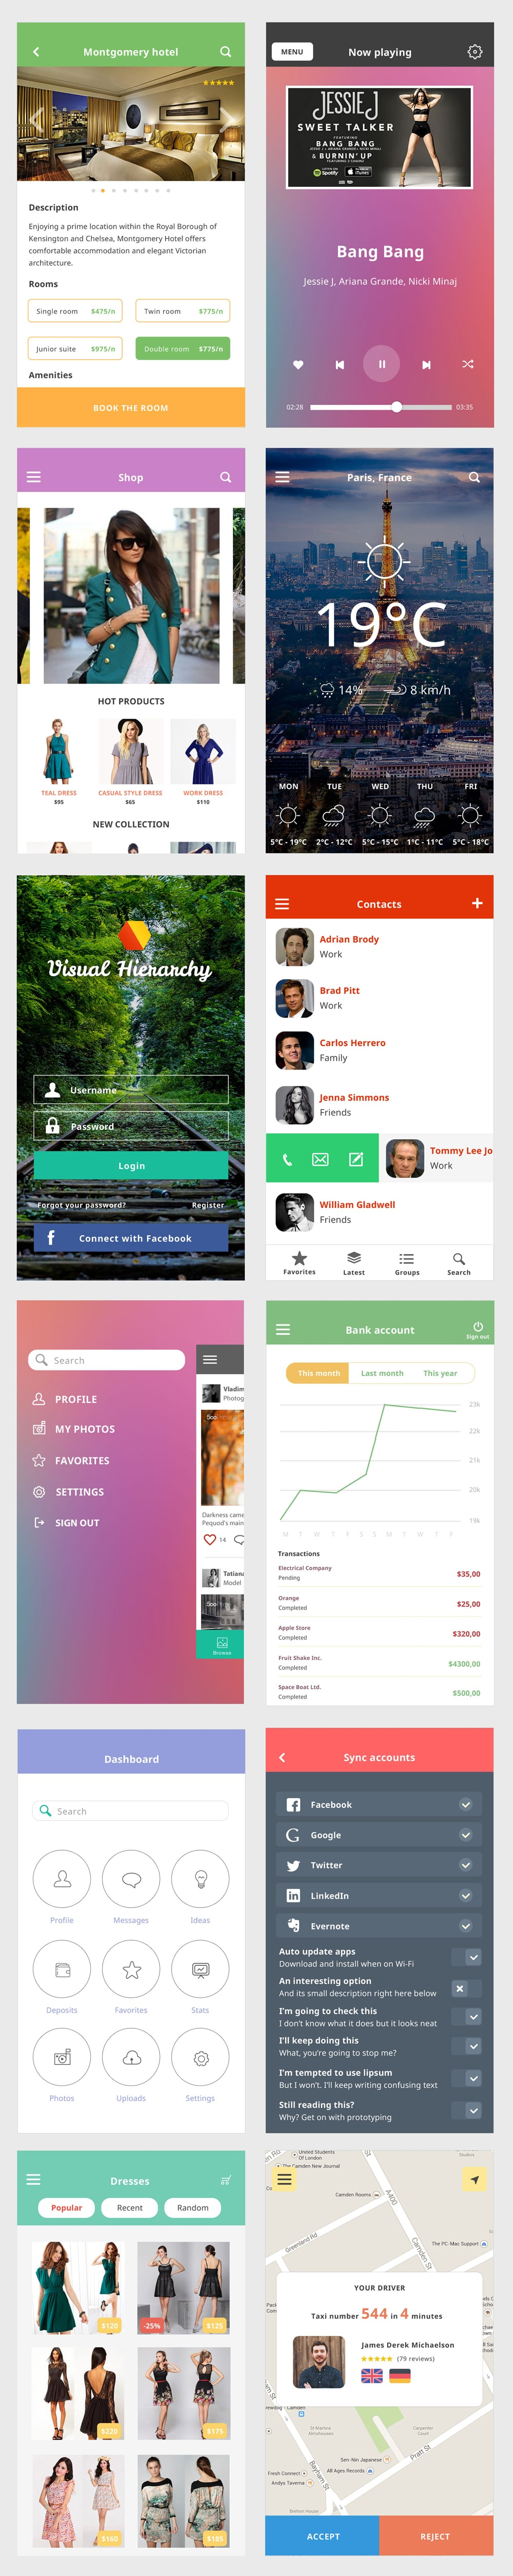 Ace iOS8 Mobile UI Kit PSD